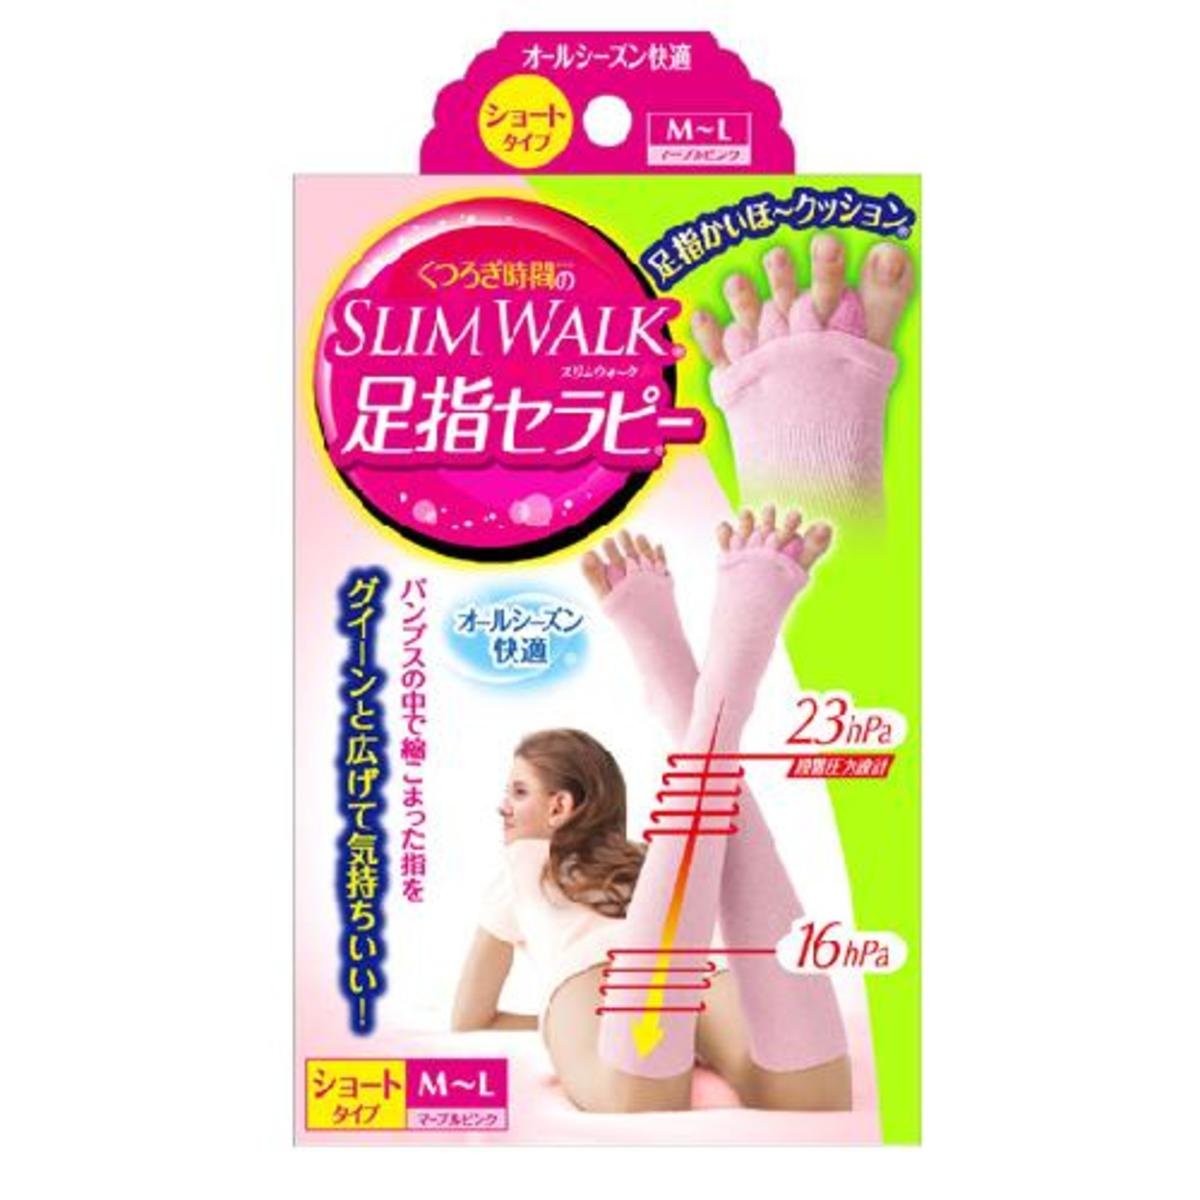 Compression Split open-toe socks (1pair) ML size (pink)